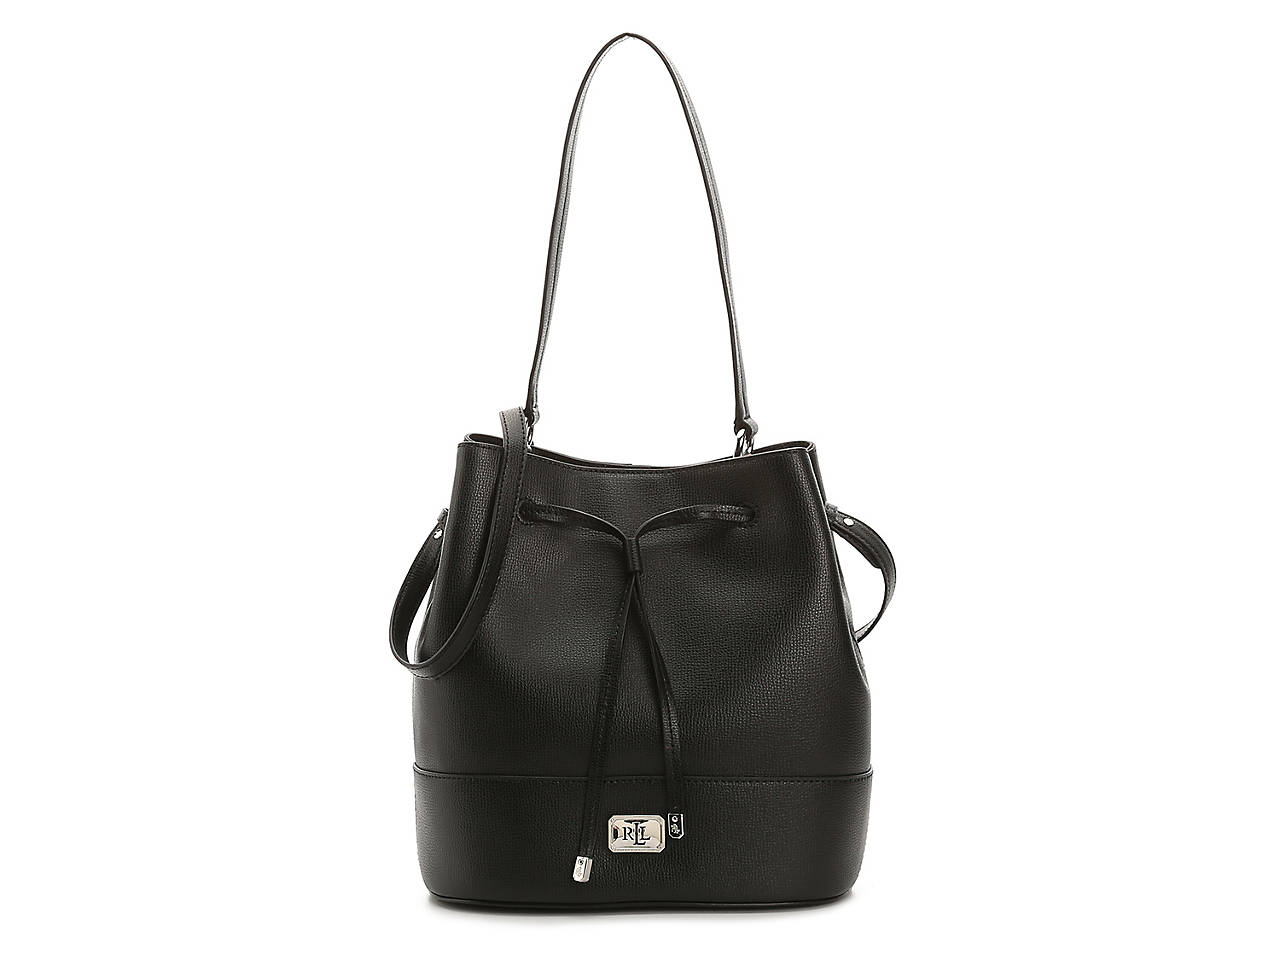 Hornsby Leather Shoulder Bag